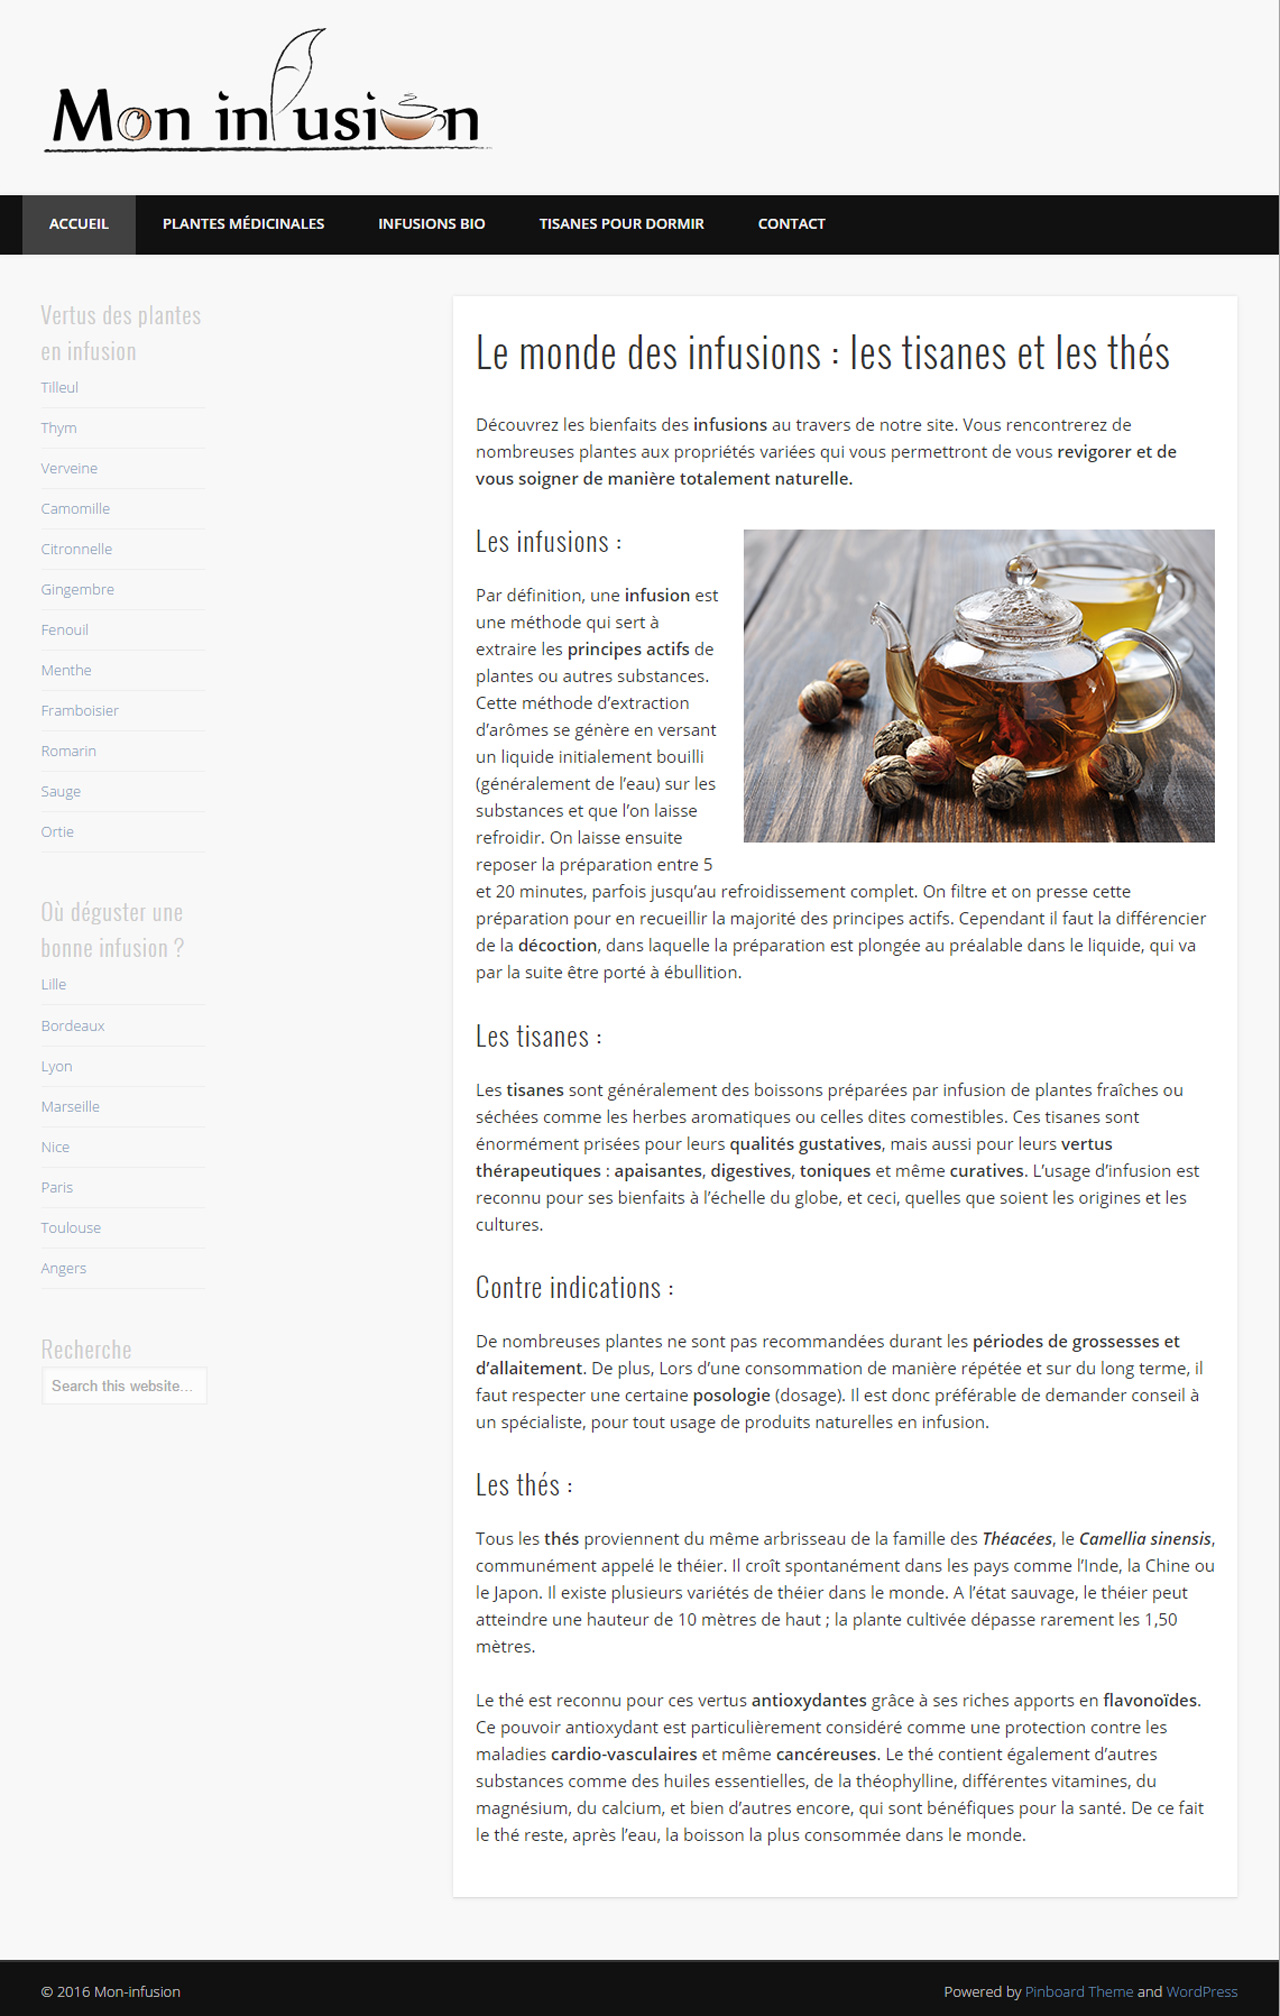 Mon infusion - page d'accueil